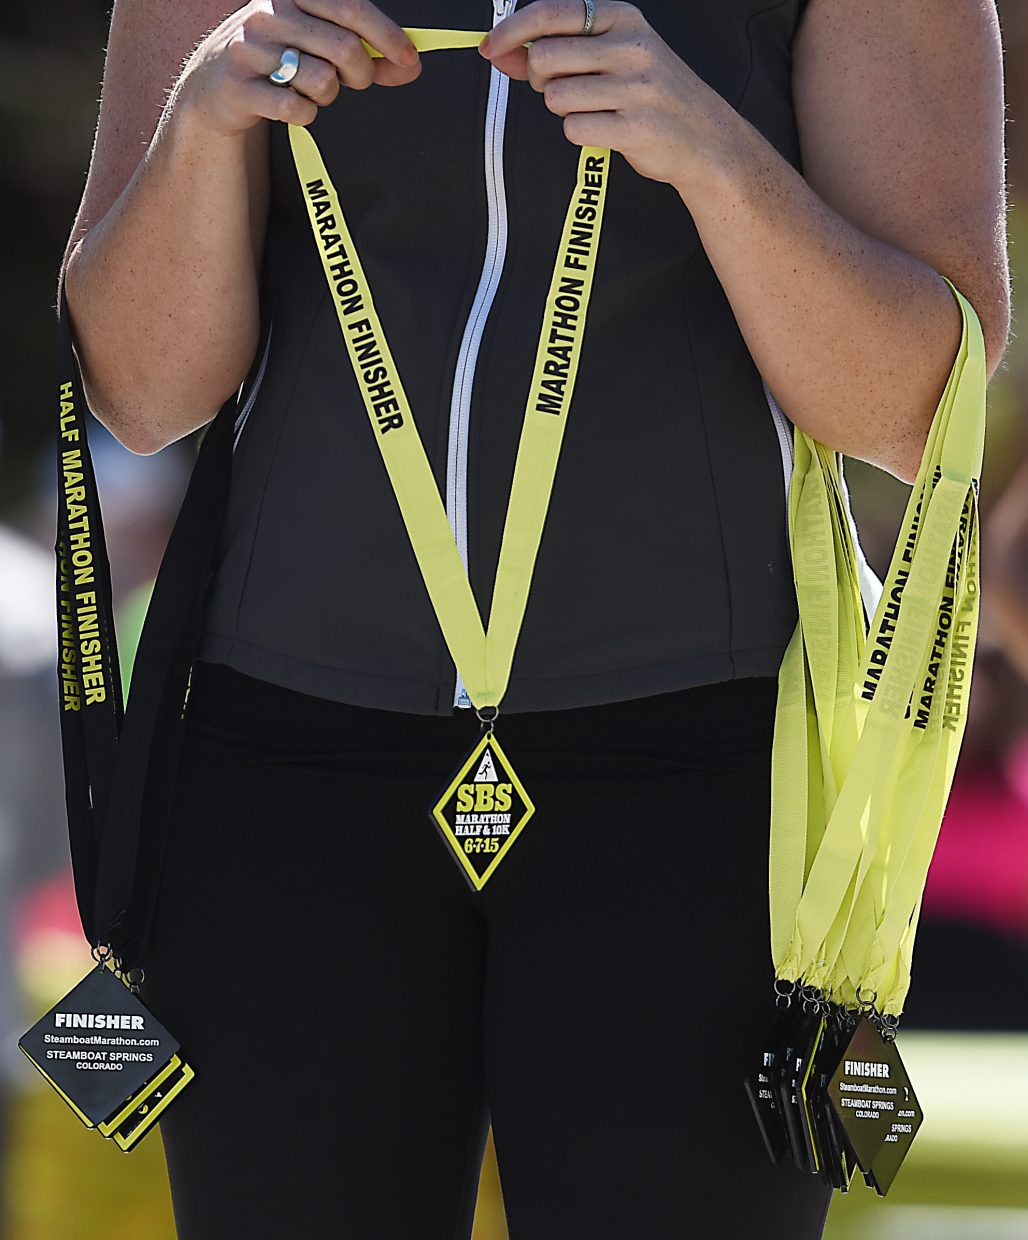 A volunteer holds medals while waiting for finishers at Sunday's Steamboat Marathon in Steamboat Springs.